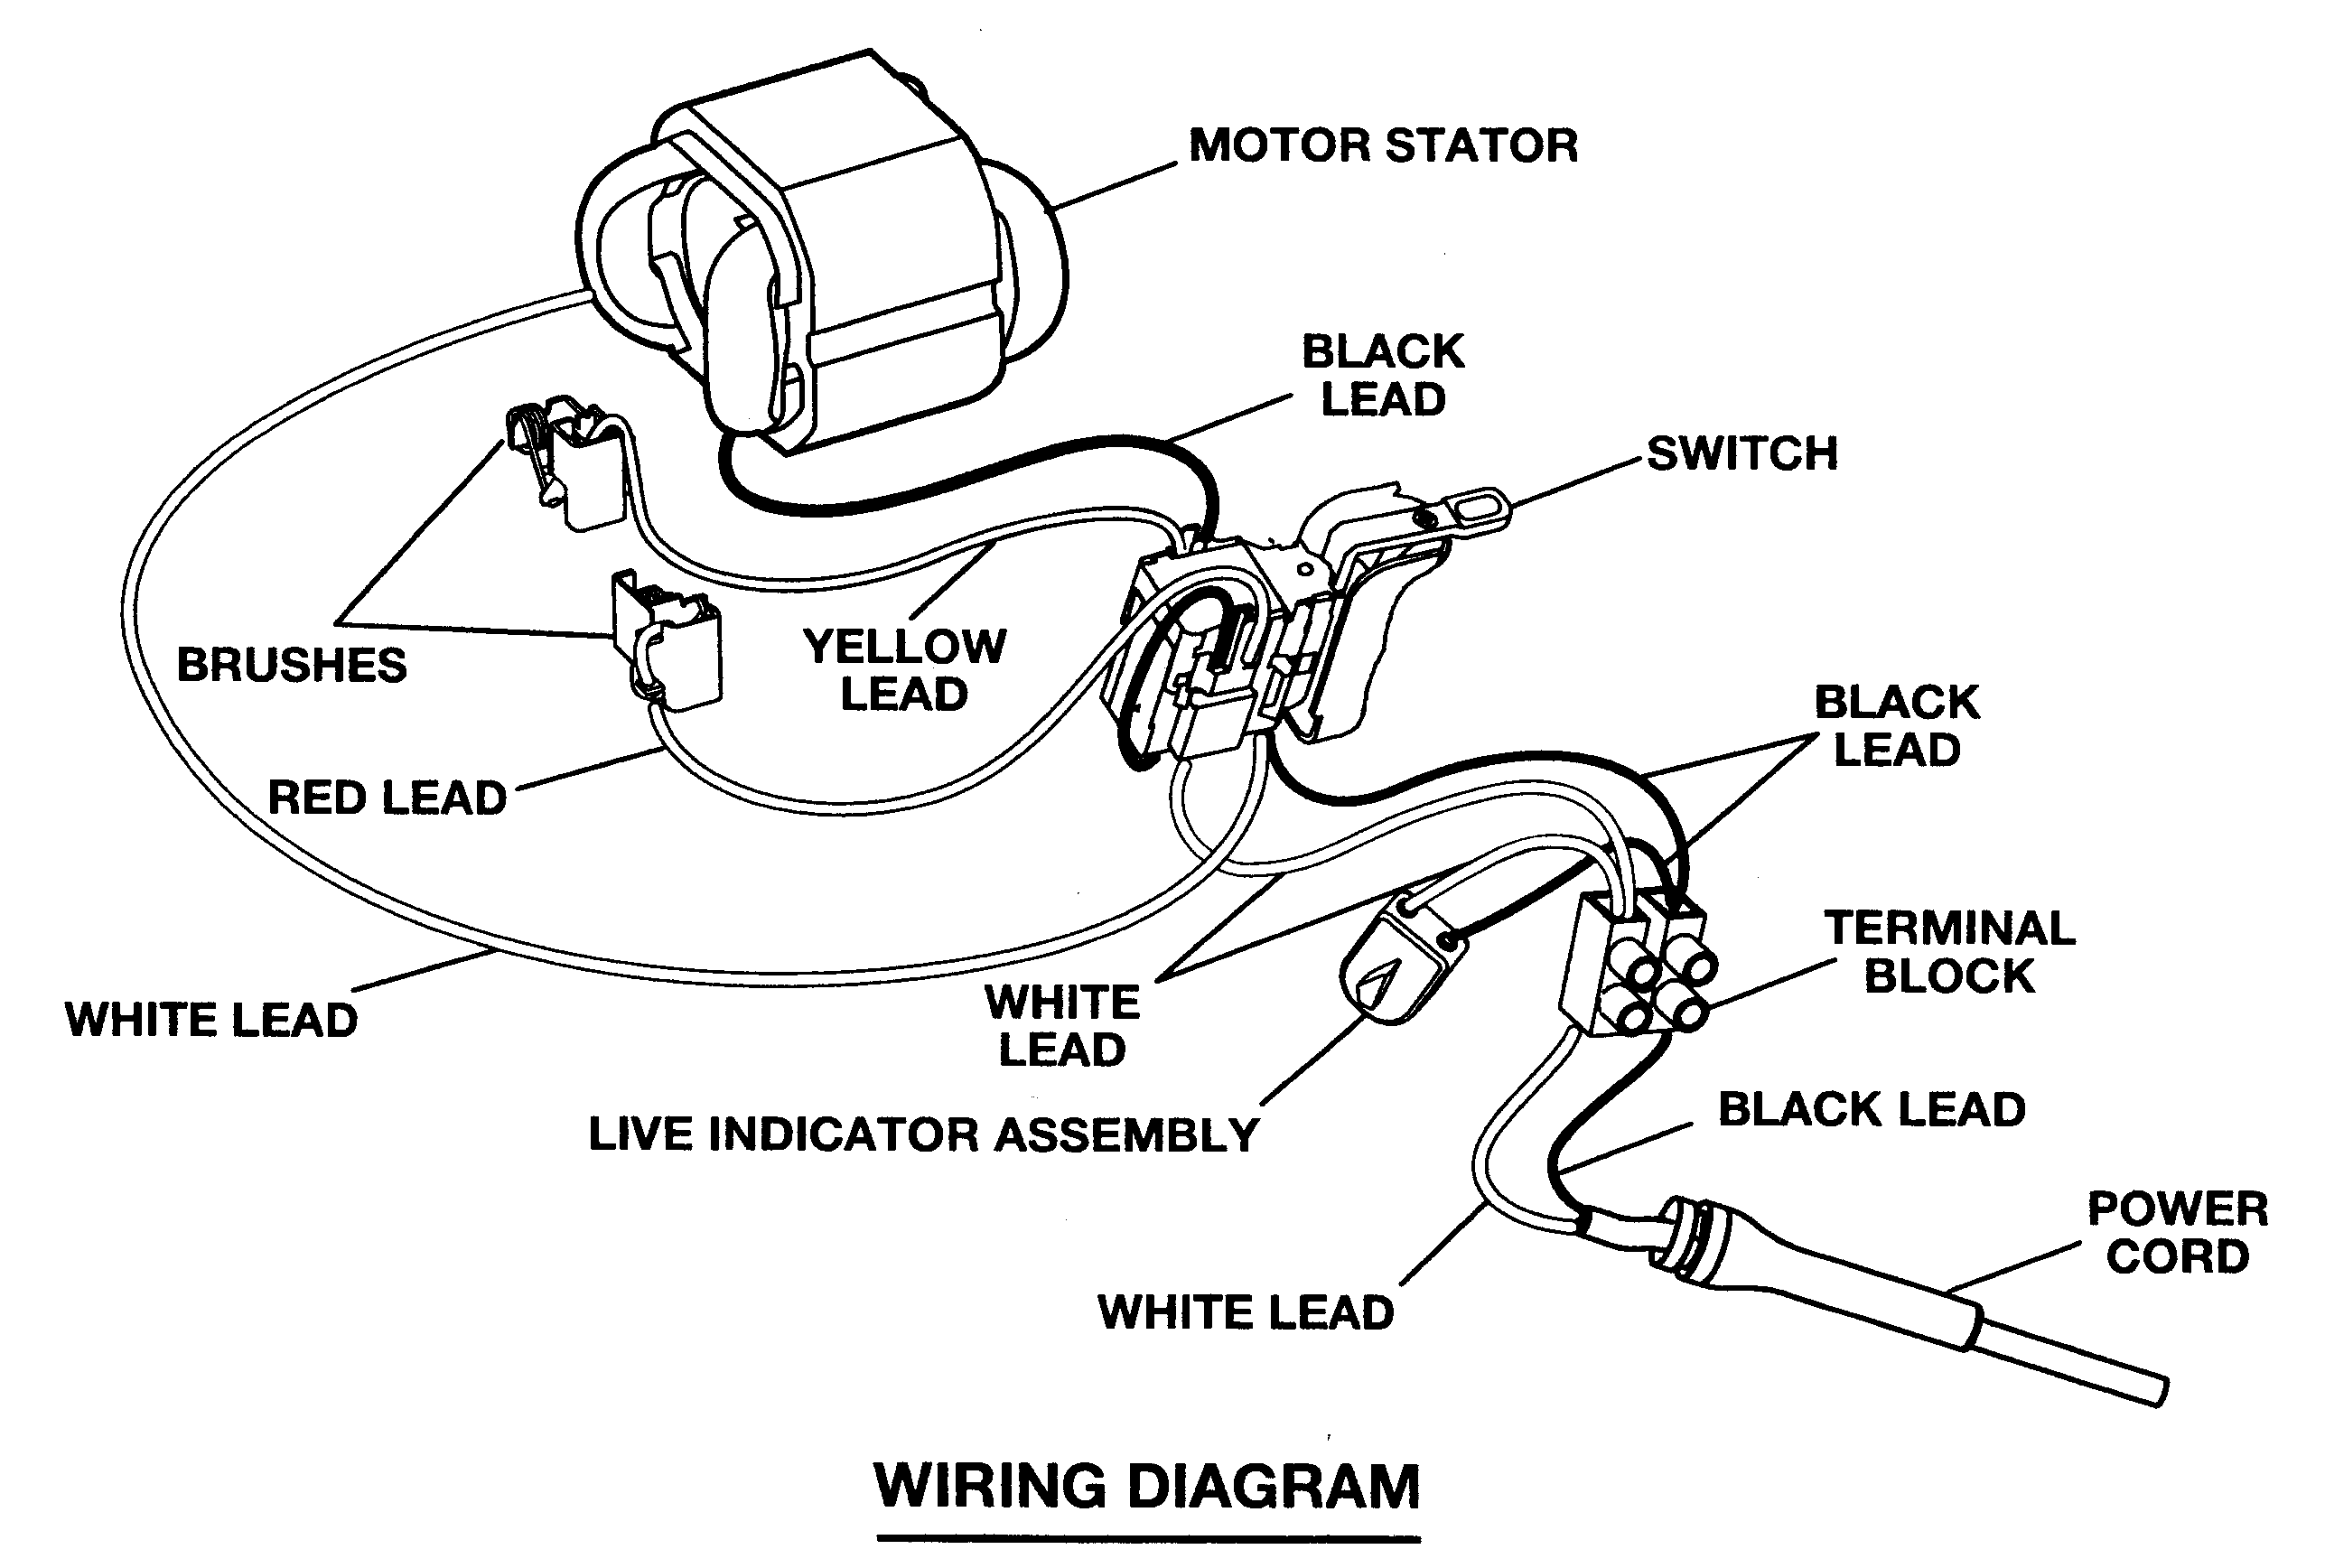 corded wiring diagram